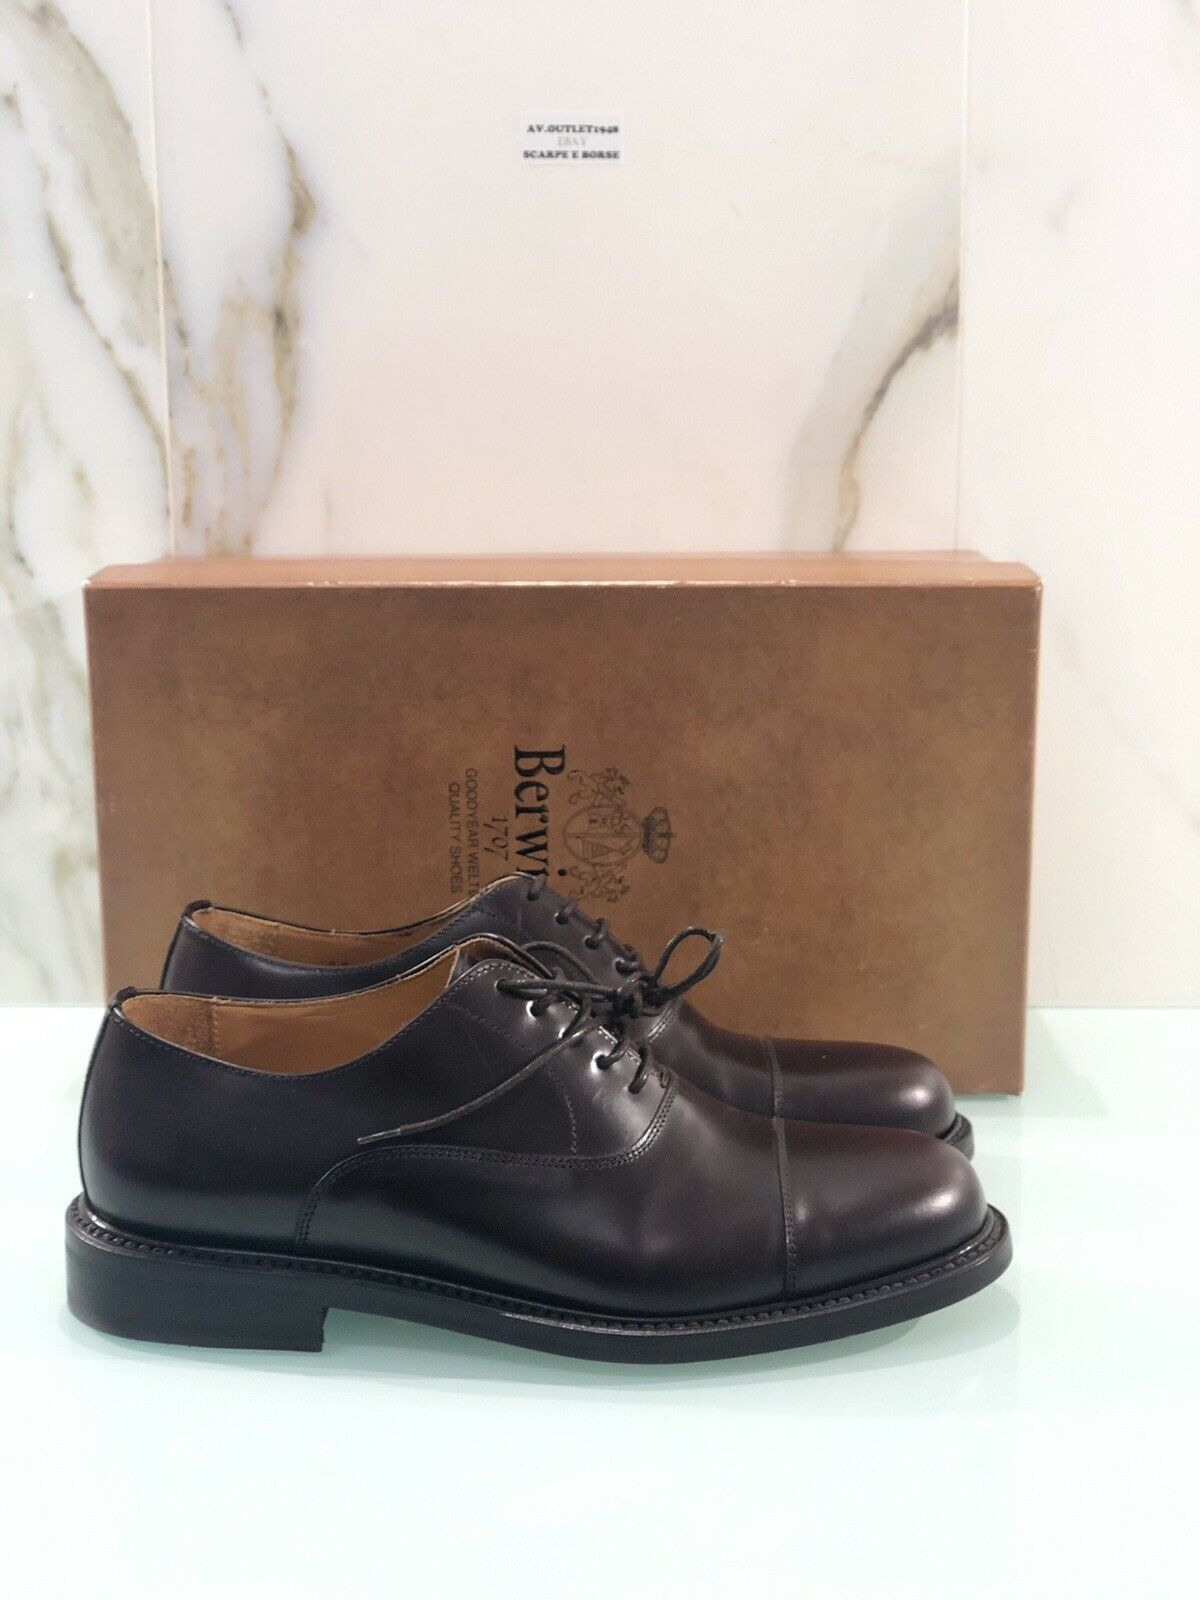 Berwick 1707 Oxford In Pelle Crokex 3739 Numero 40 Goodyear Welted H0192